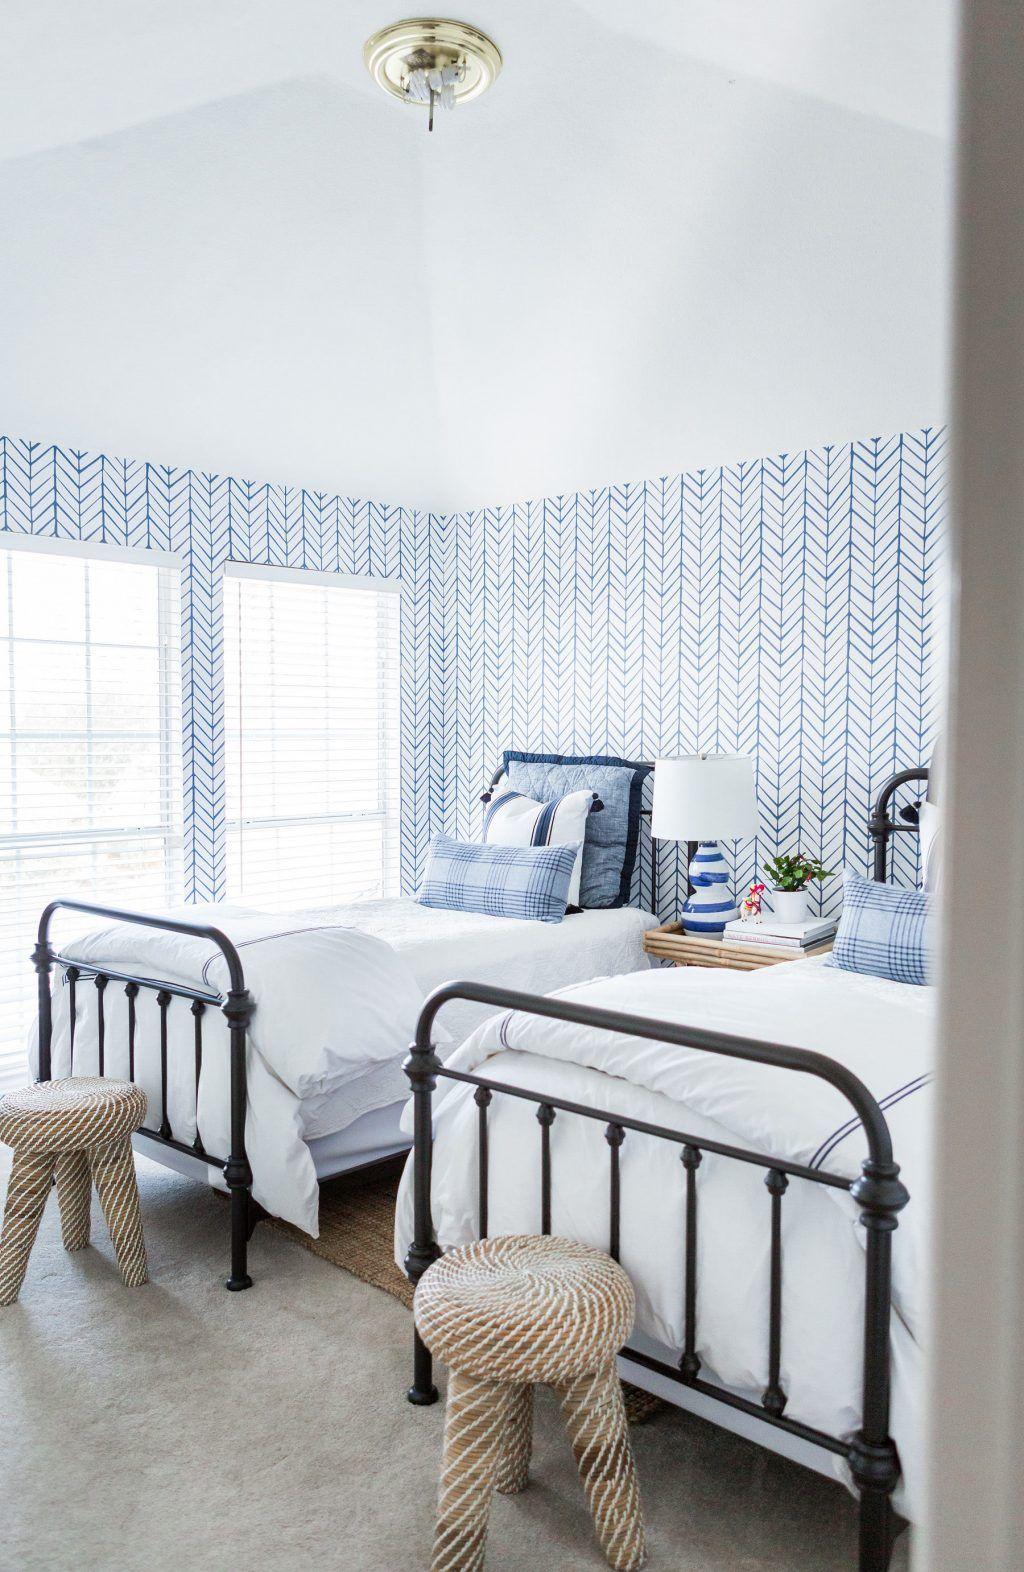 The Guest Room images